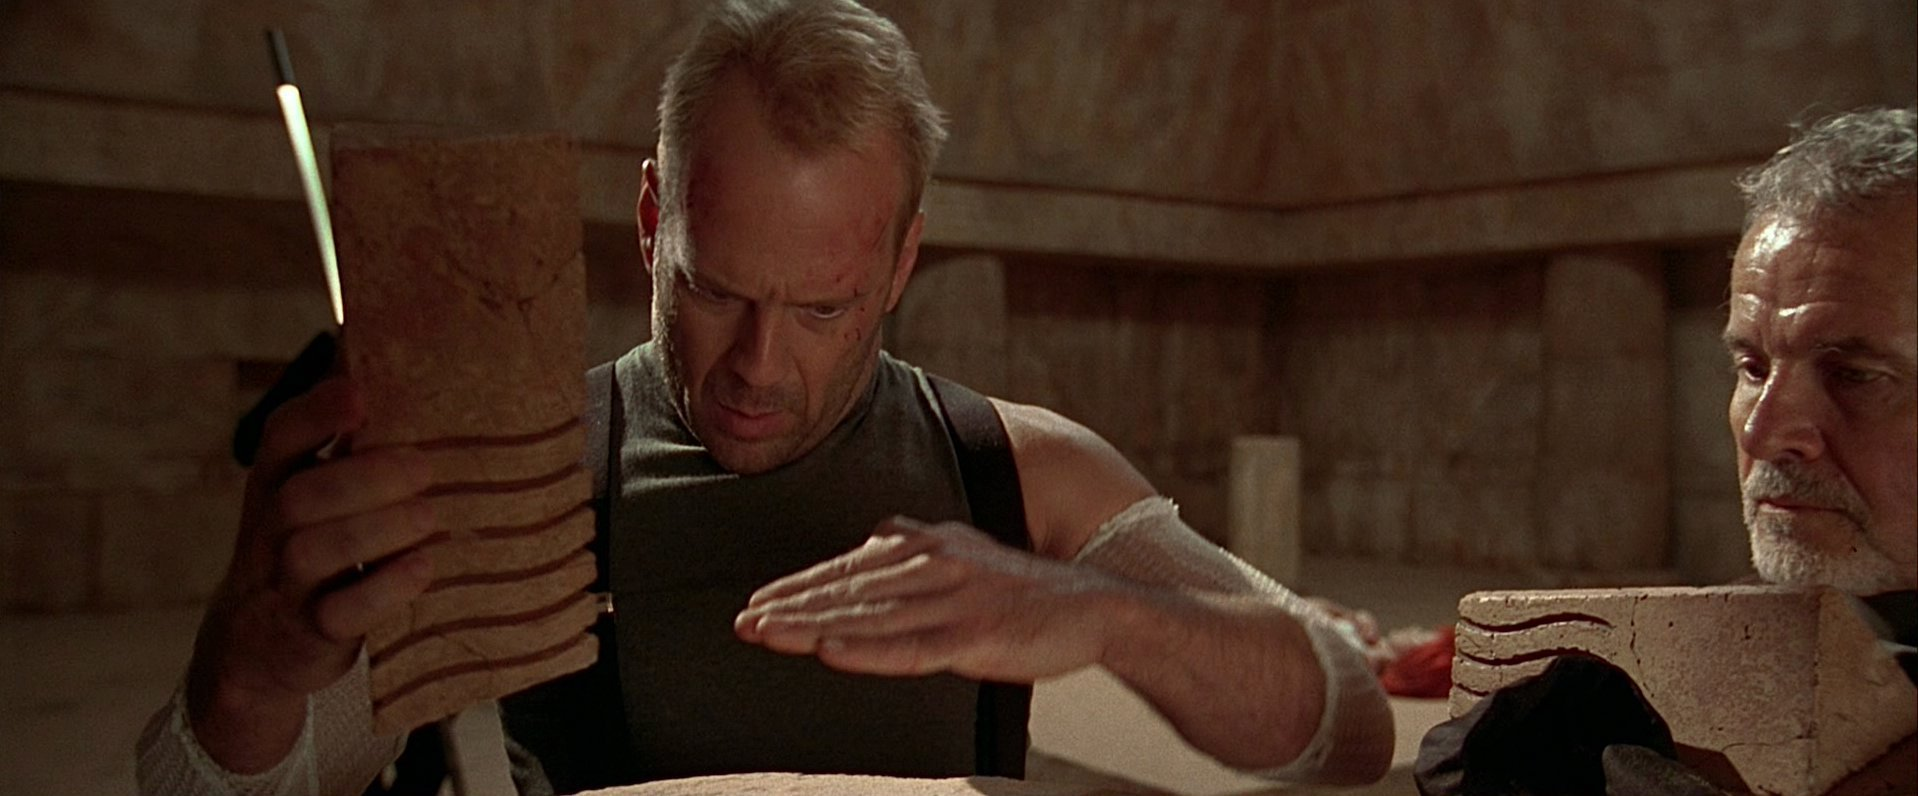 The-Fifth-Element-the-fifth-element-5090